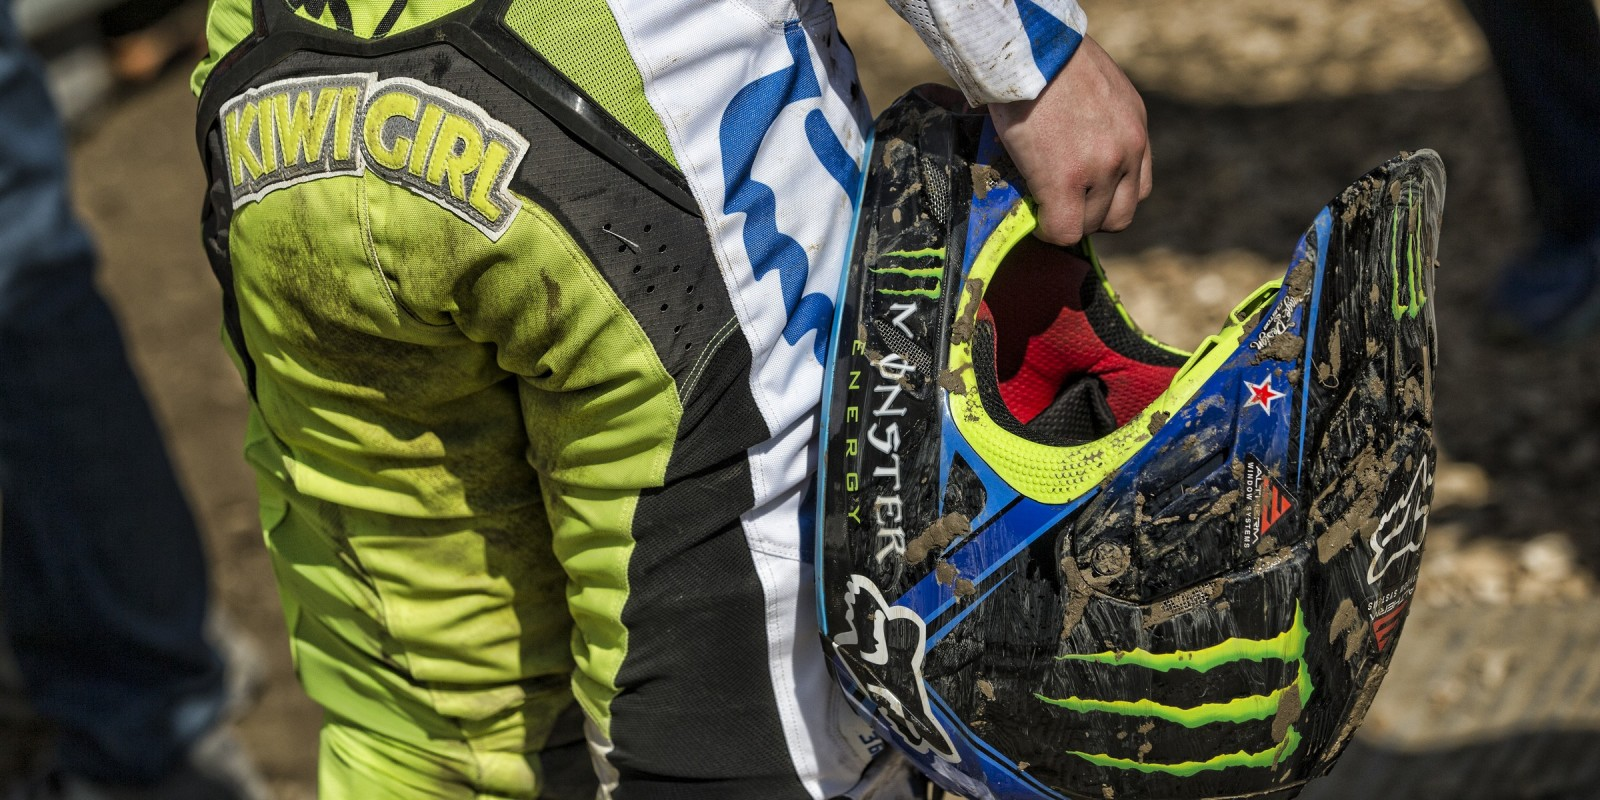 Courtney Duncan at the 2016 MXGP of Switzerland